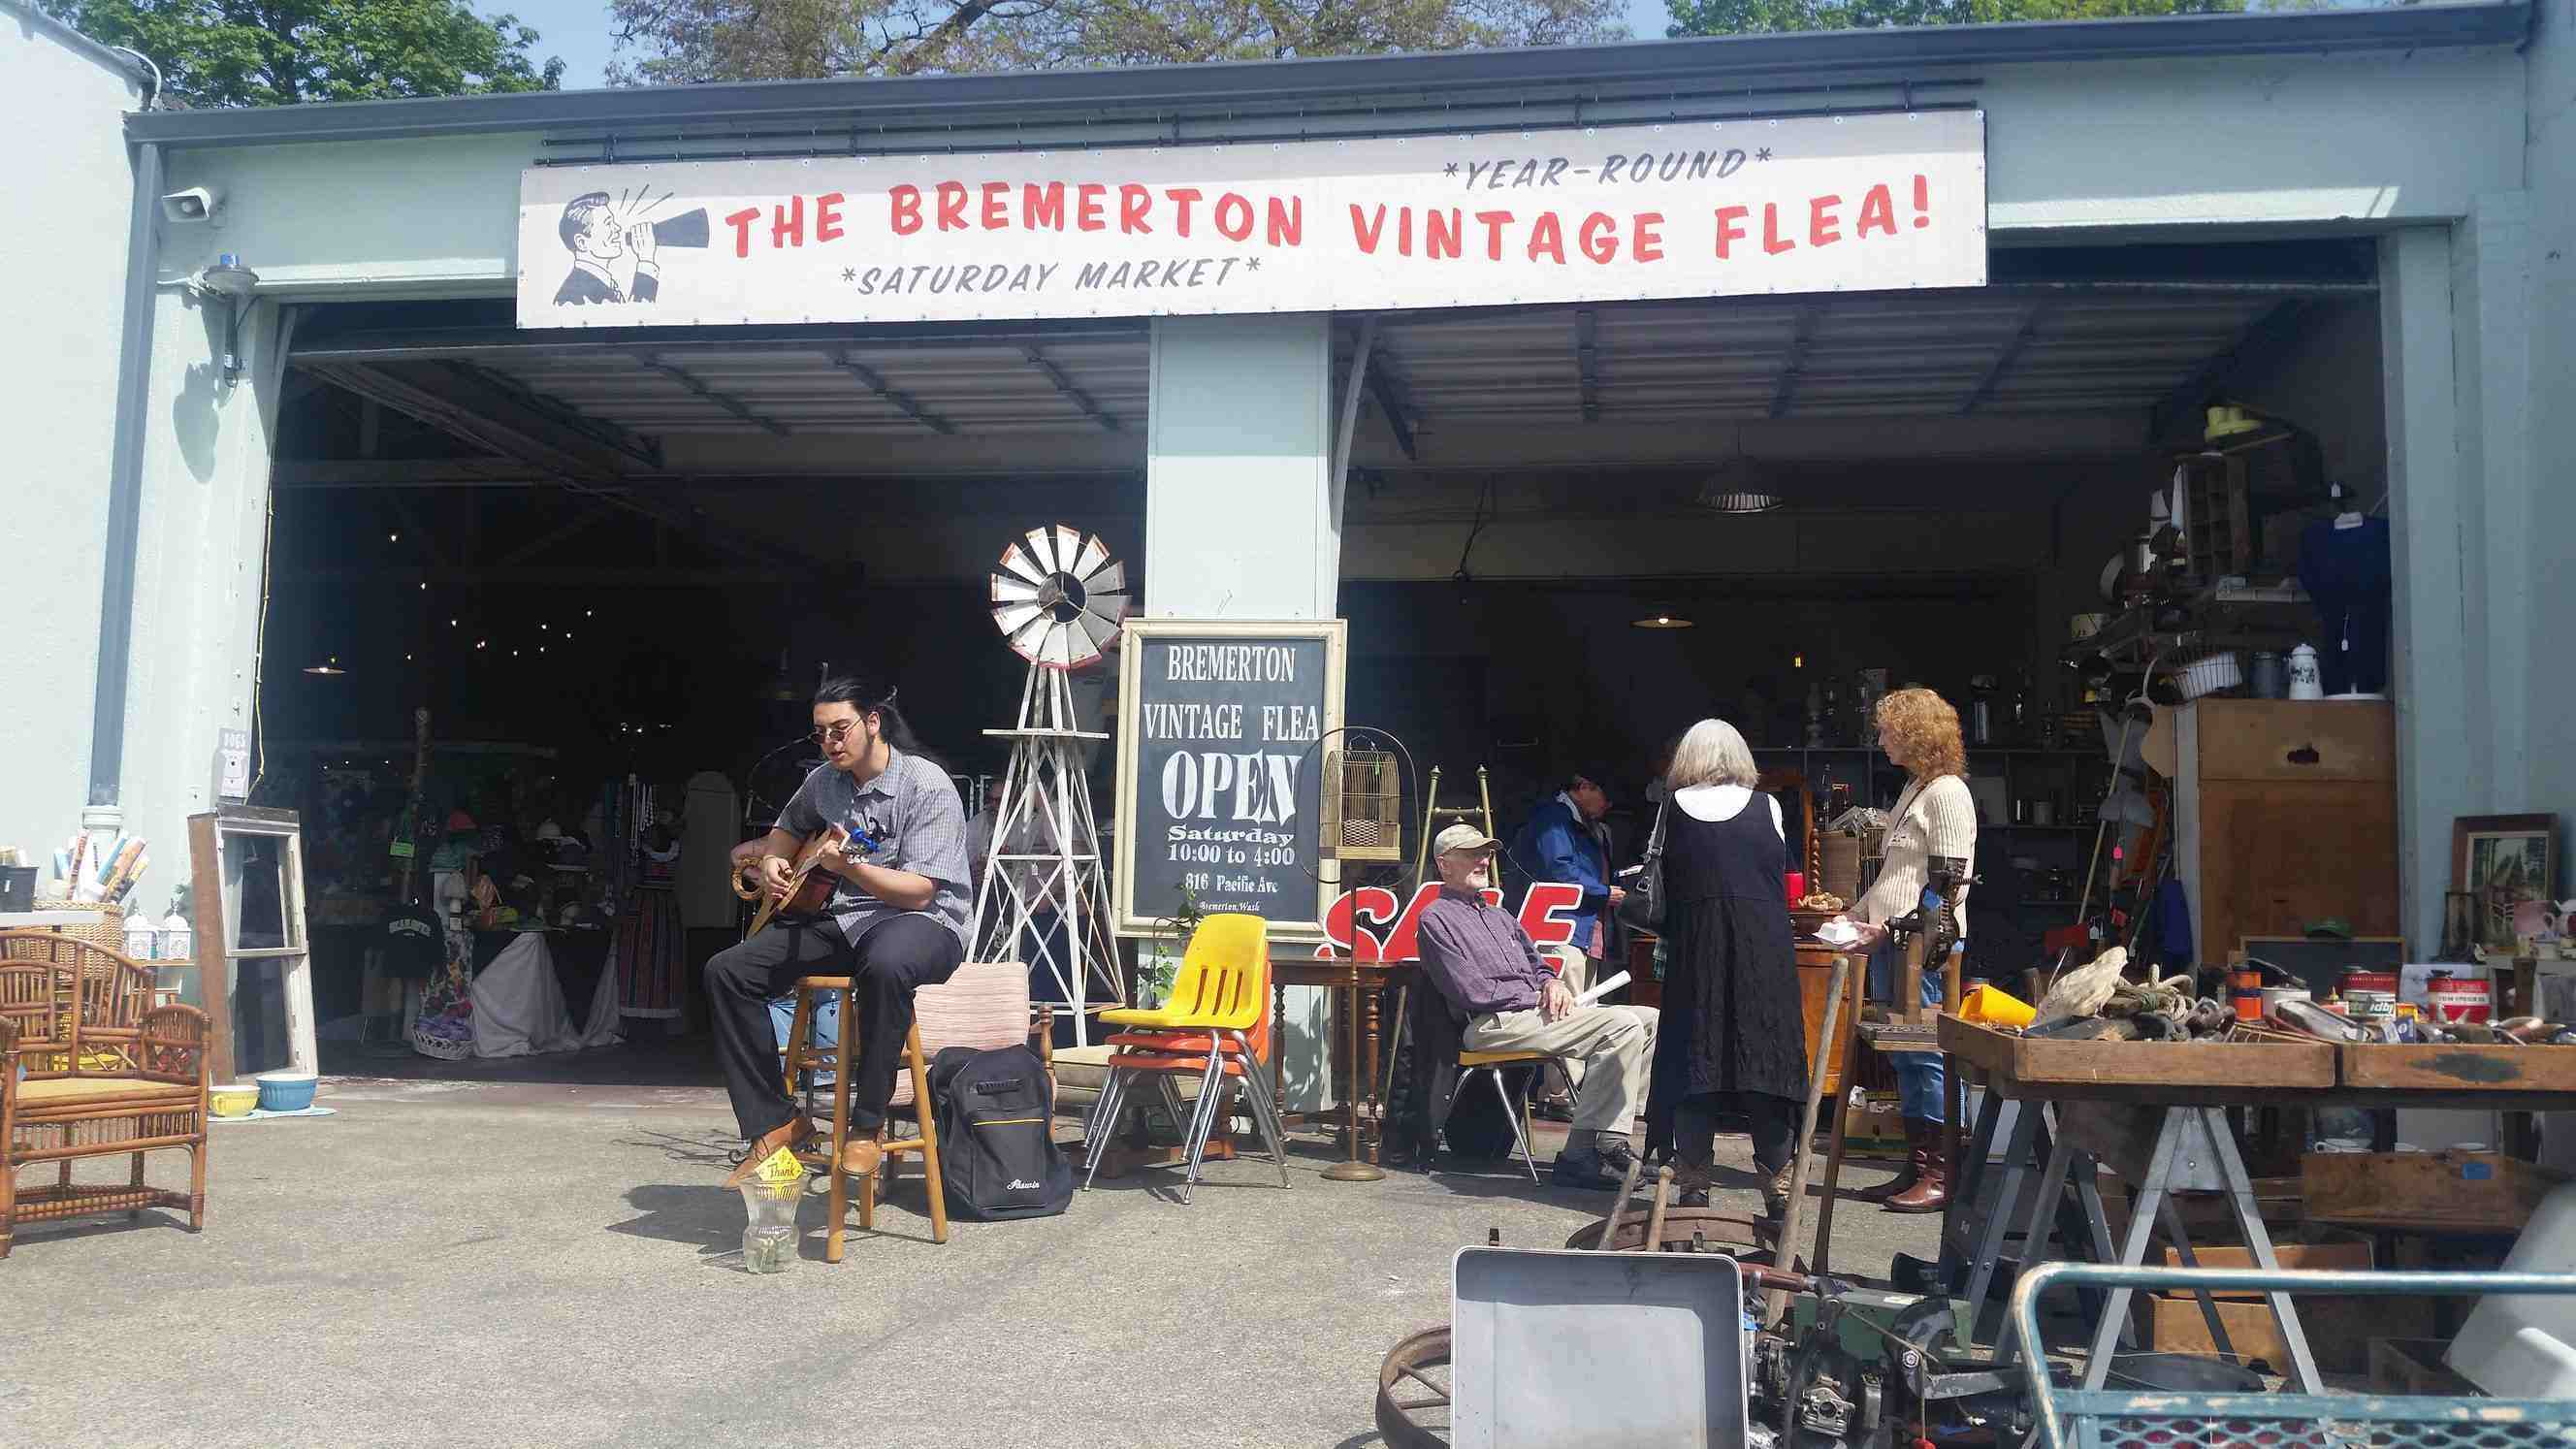 The bremerton flea market with a guy sitting infront playing guitar